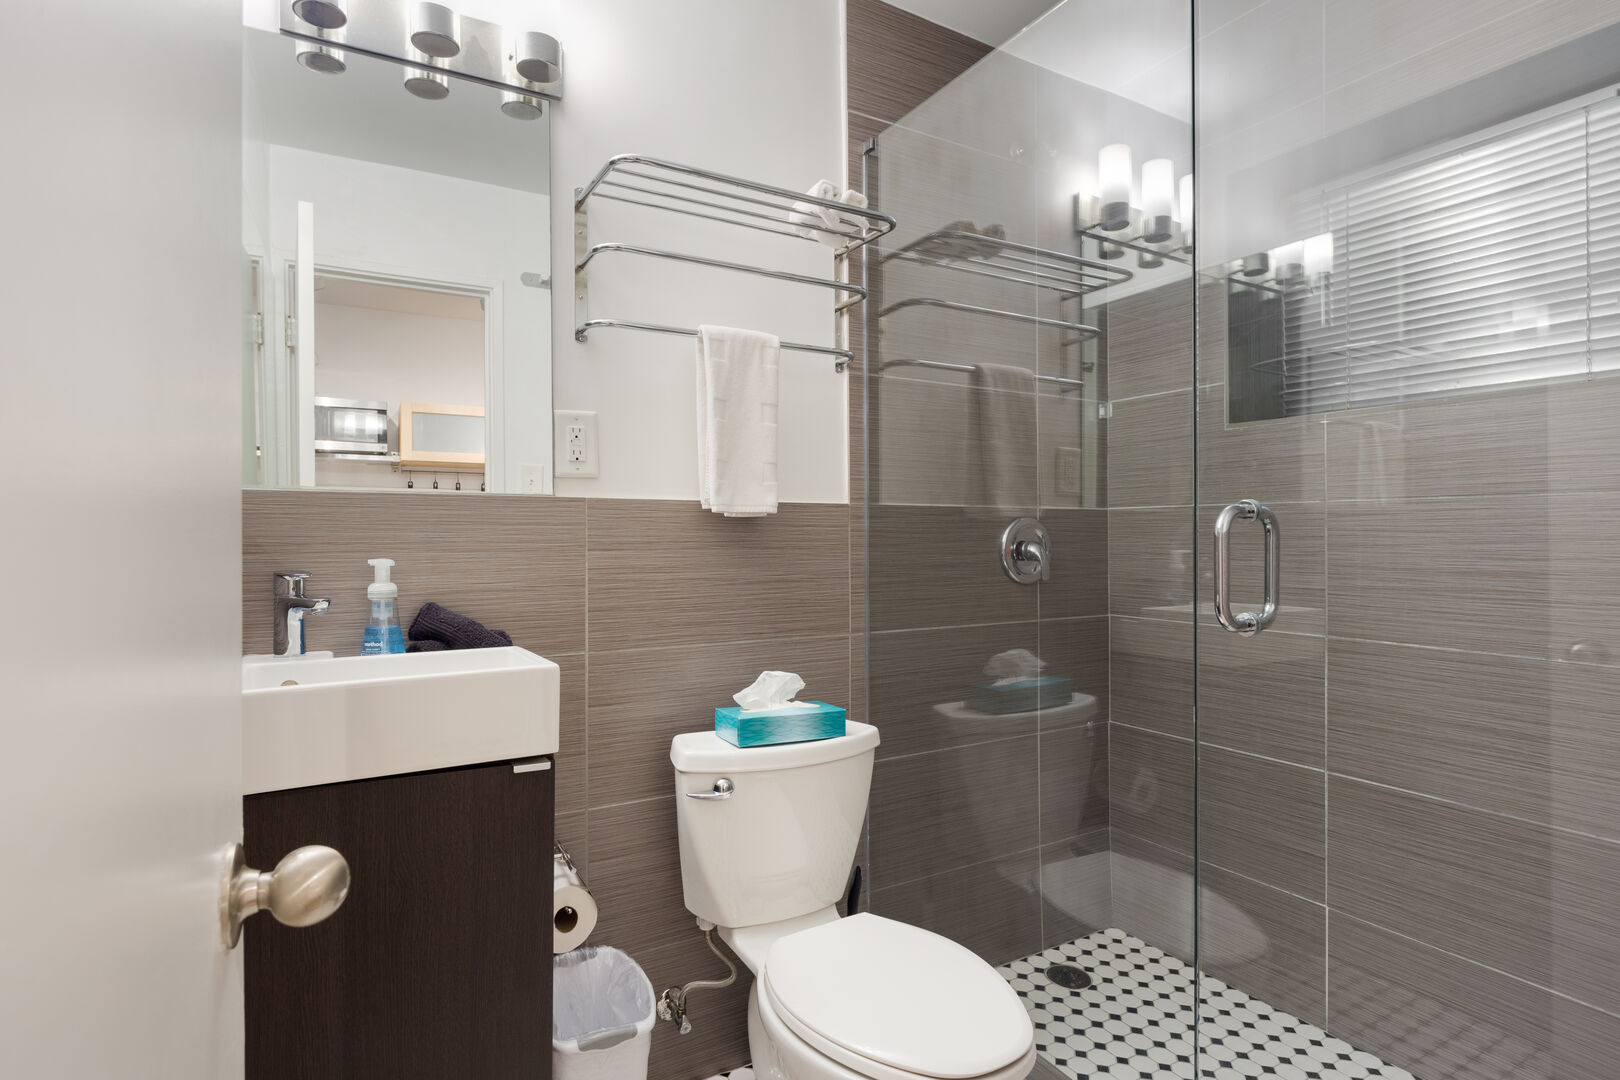 Bathroom with Glass Walk-in Shower - Furnished Apartments in Atlanta - Chic Premium Studios On 25th